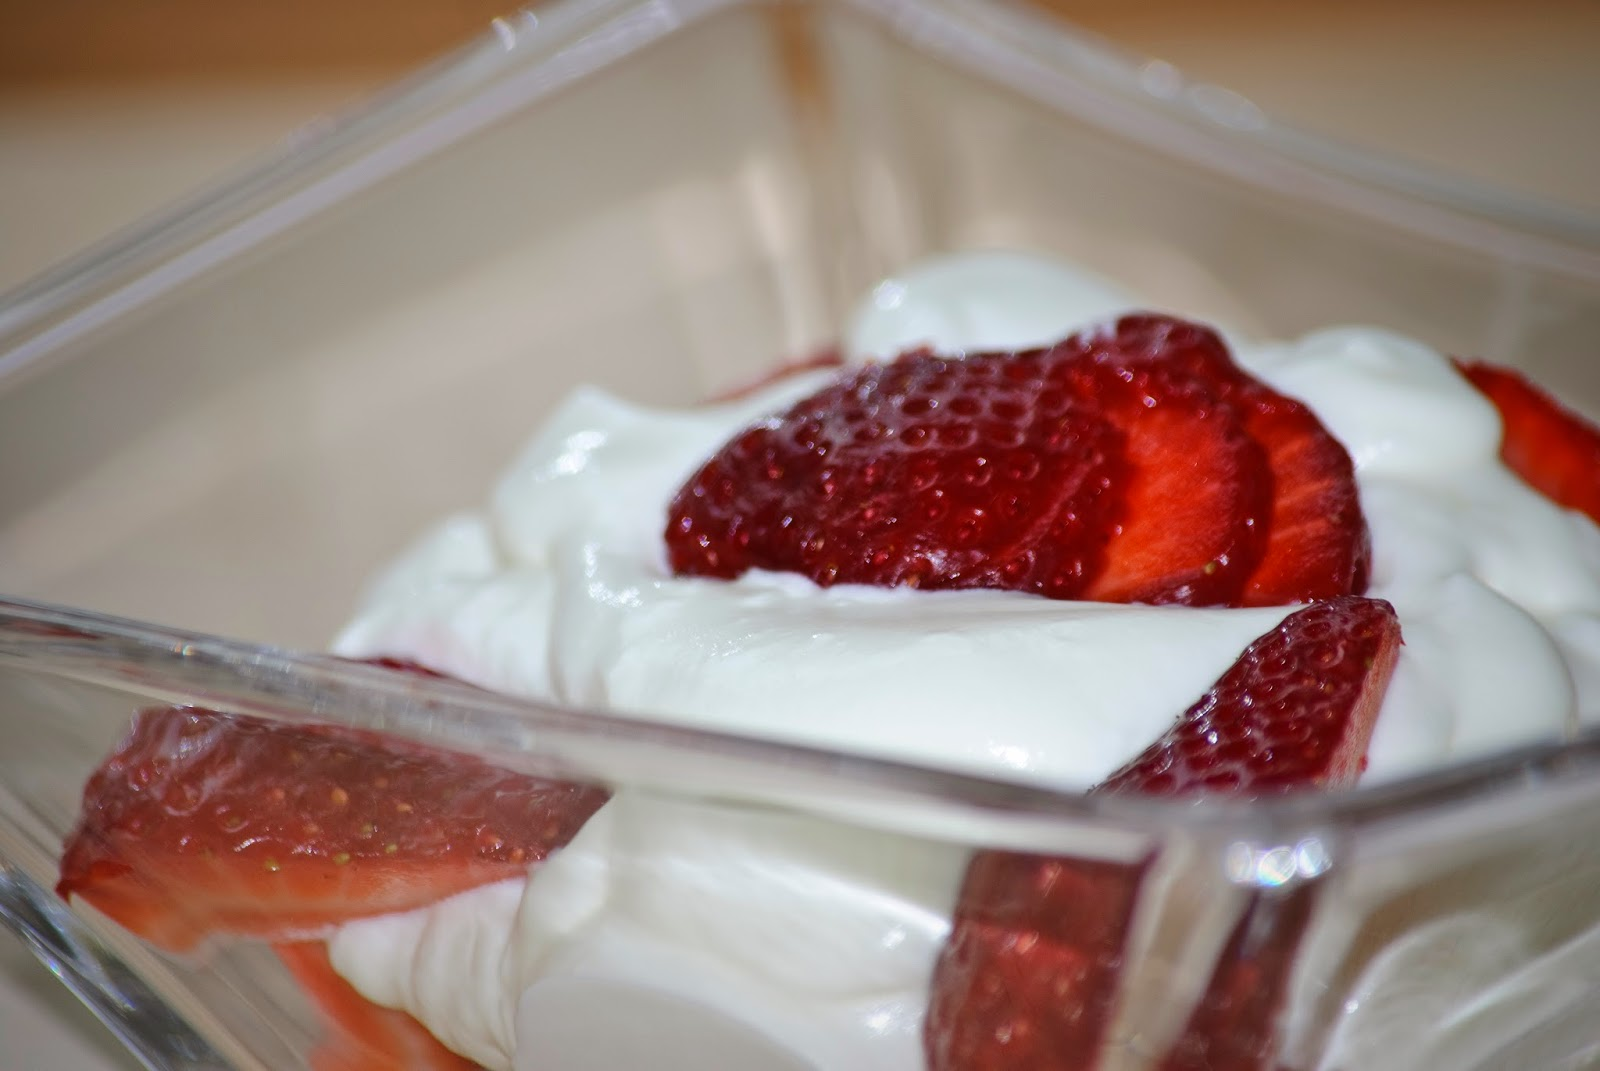 Fresas con nata; Strawberries and cream